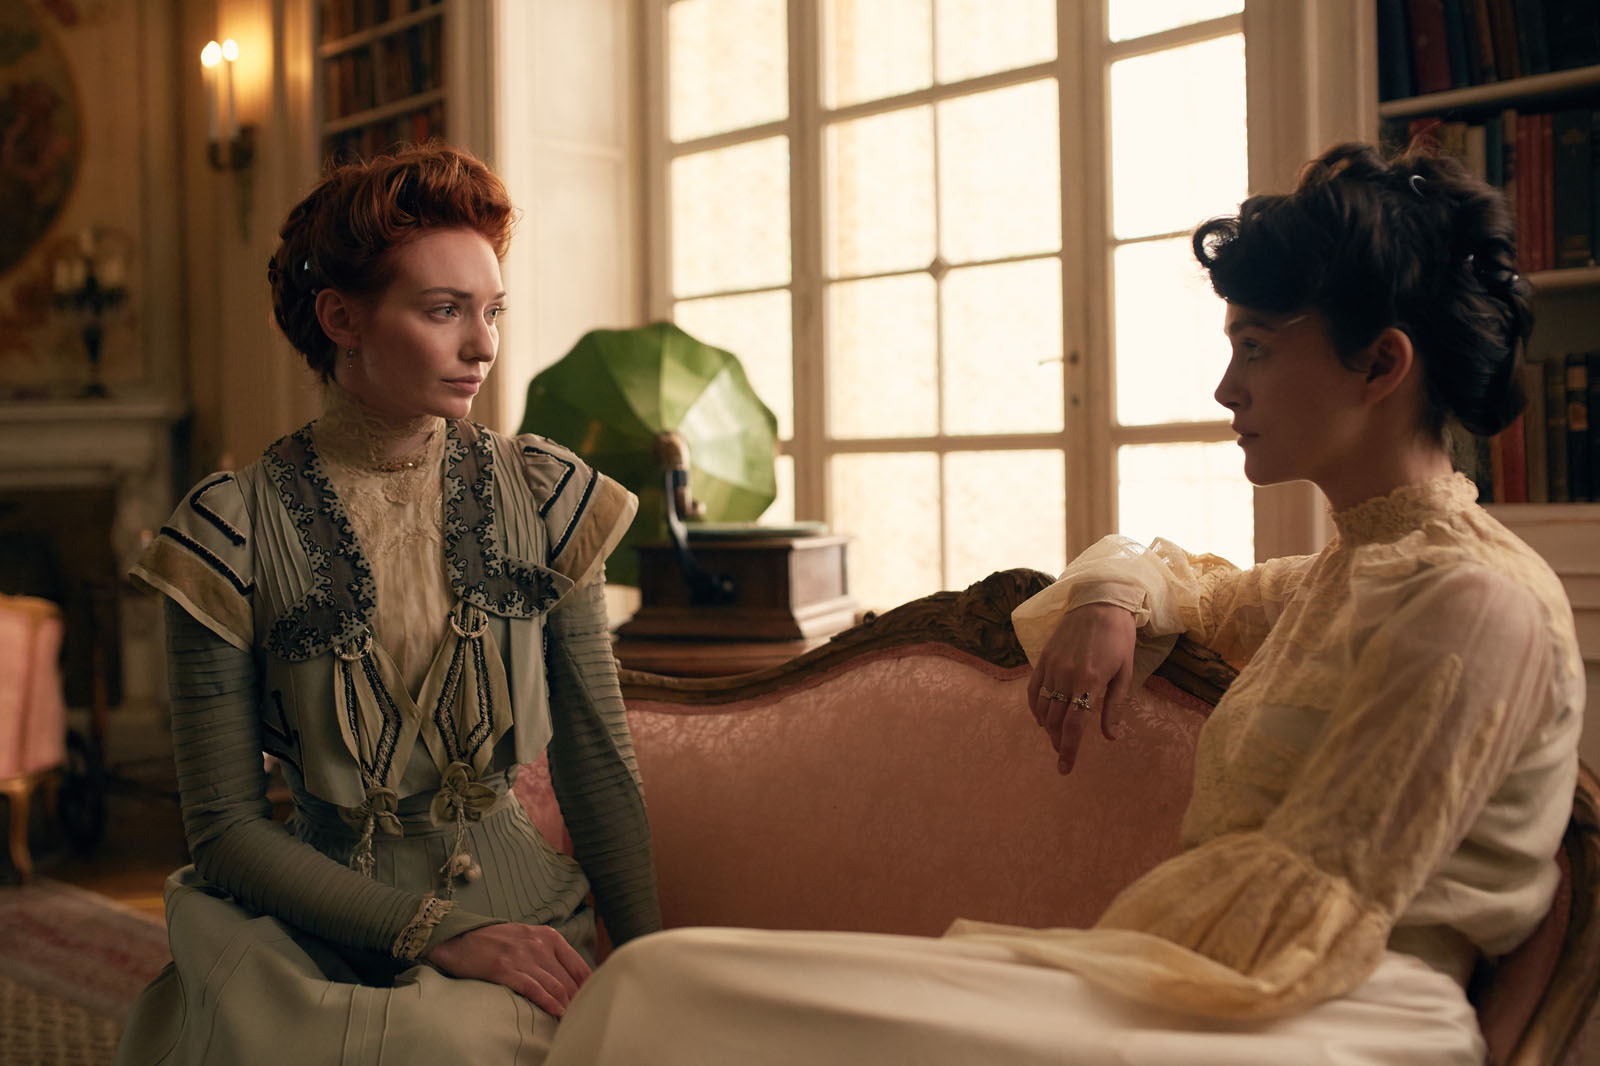 Colette film critique cinema avis Photo Eleanor Tomlinson Keira Knightley